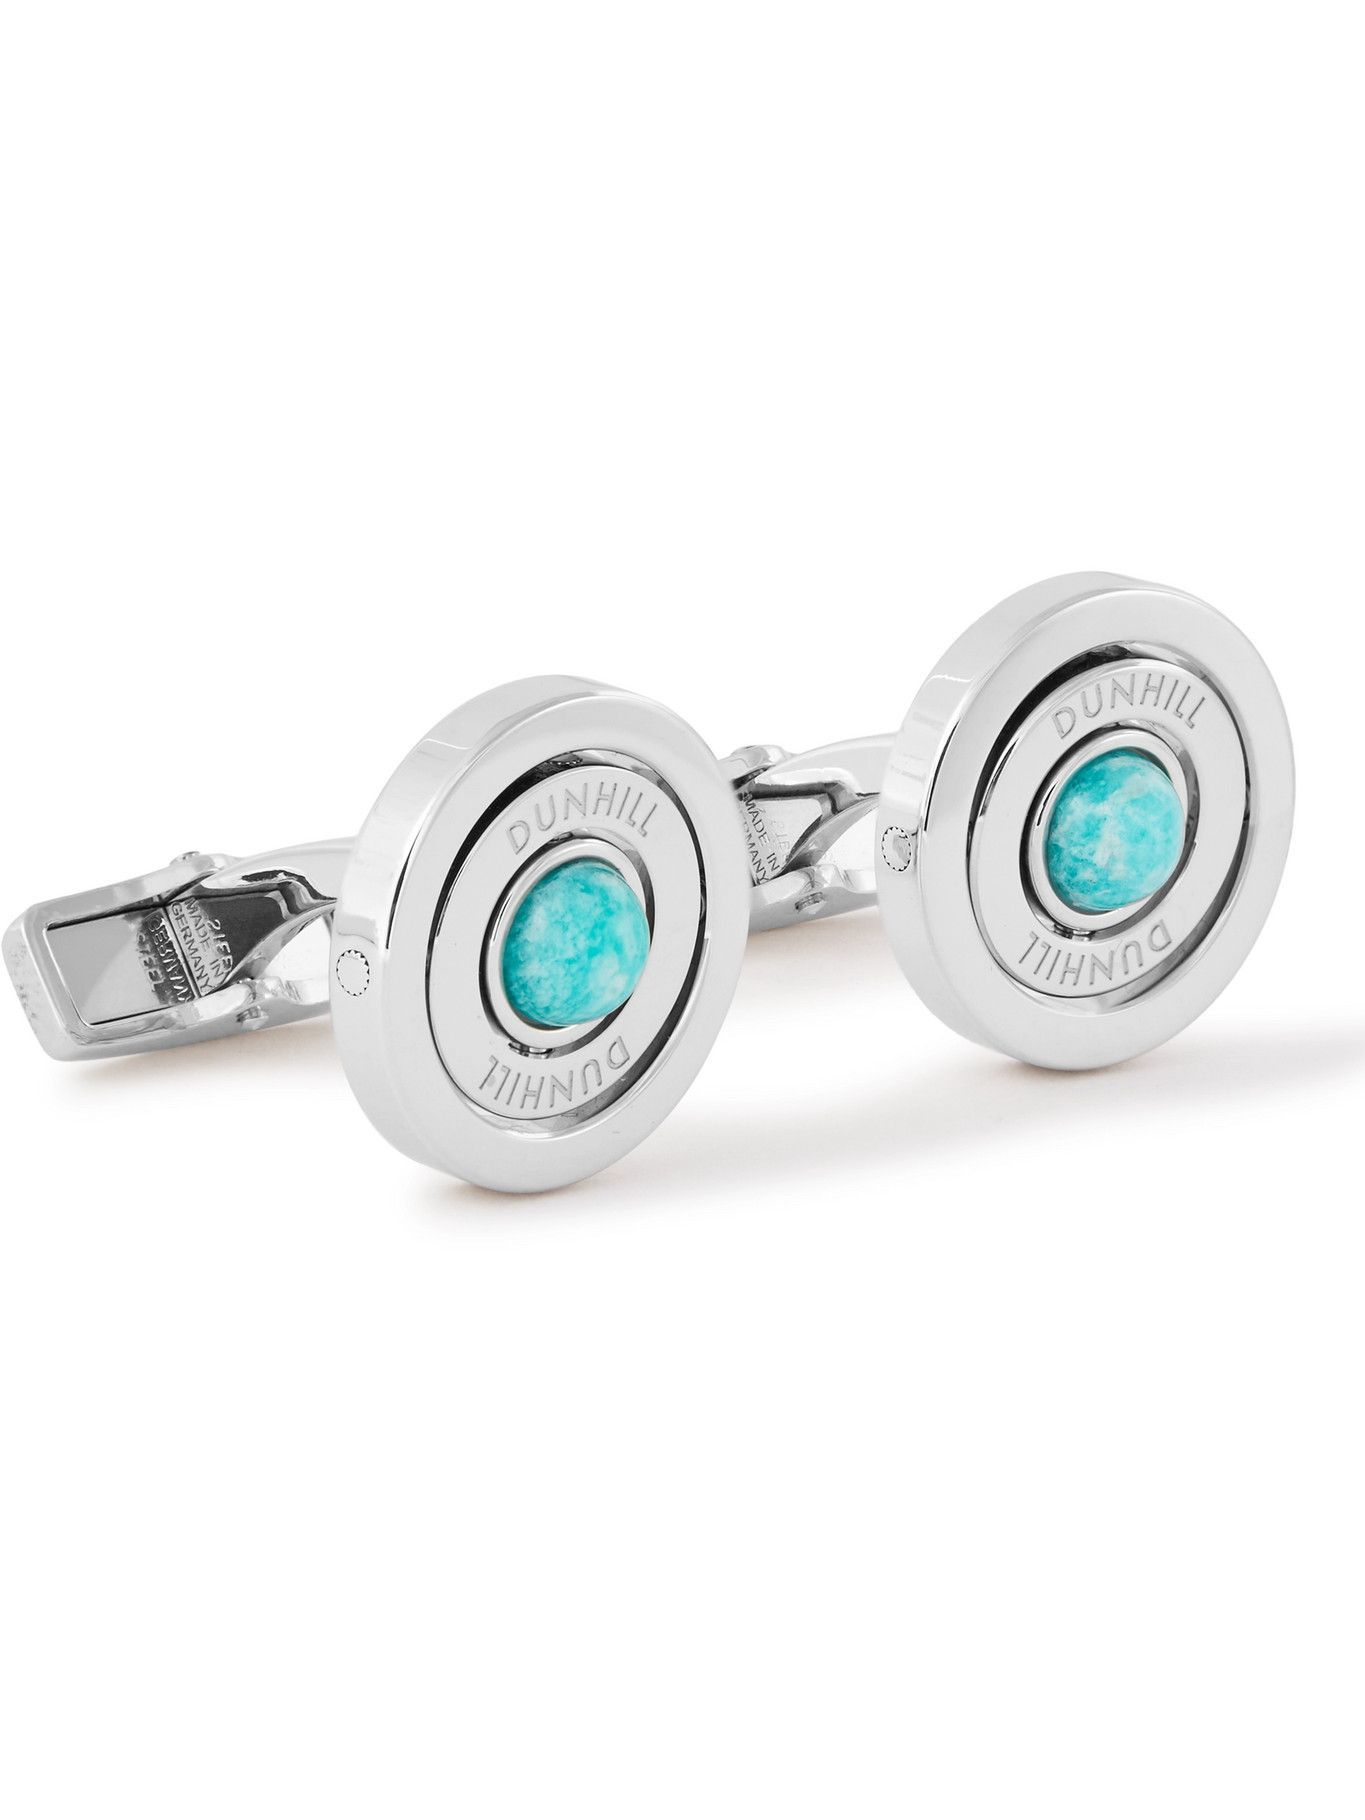 Dunhill - Turquoise and Steel Cufflinks